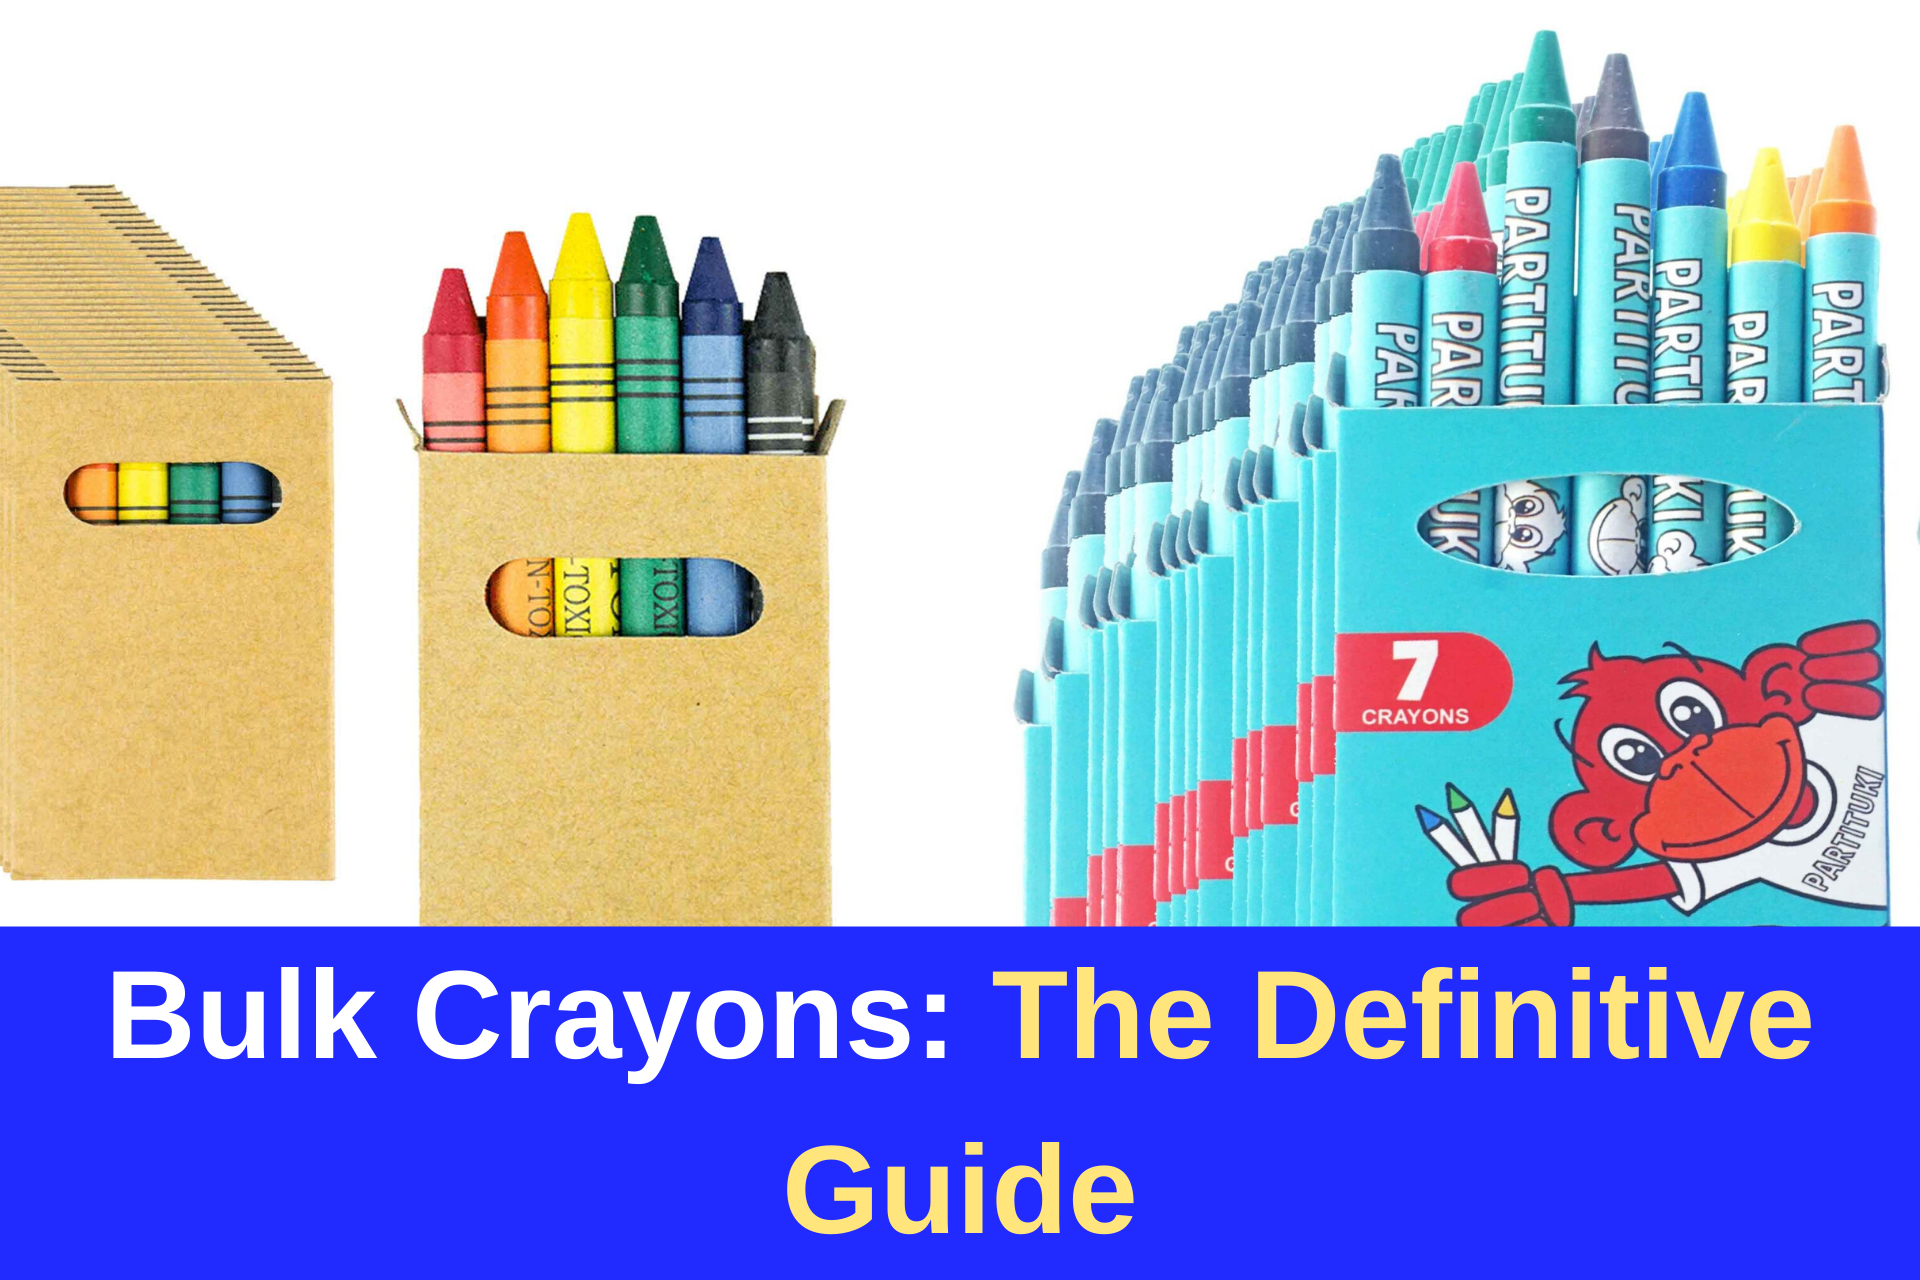 Bulk Crayons: The Definitive Guide